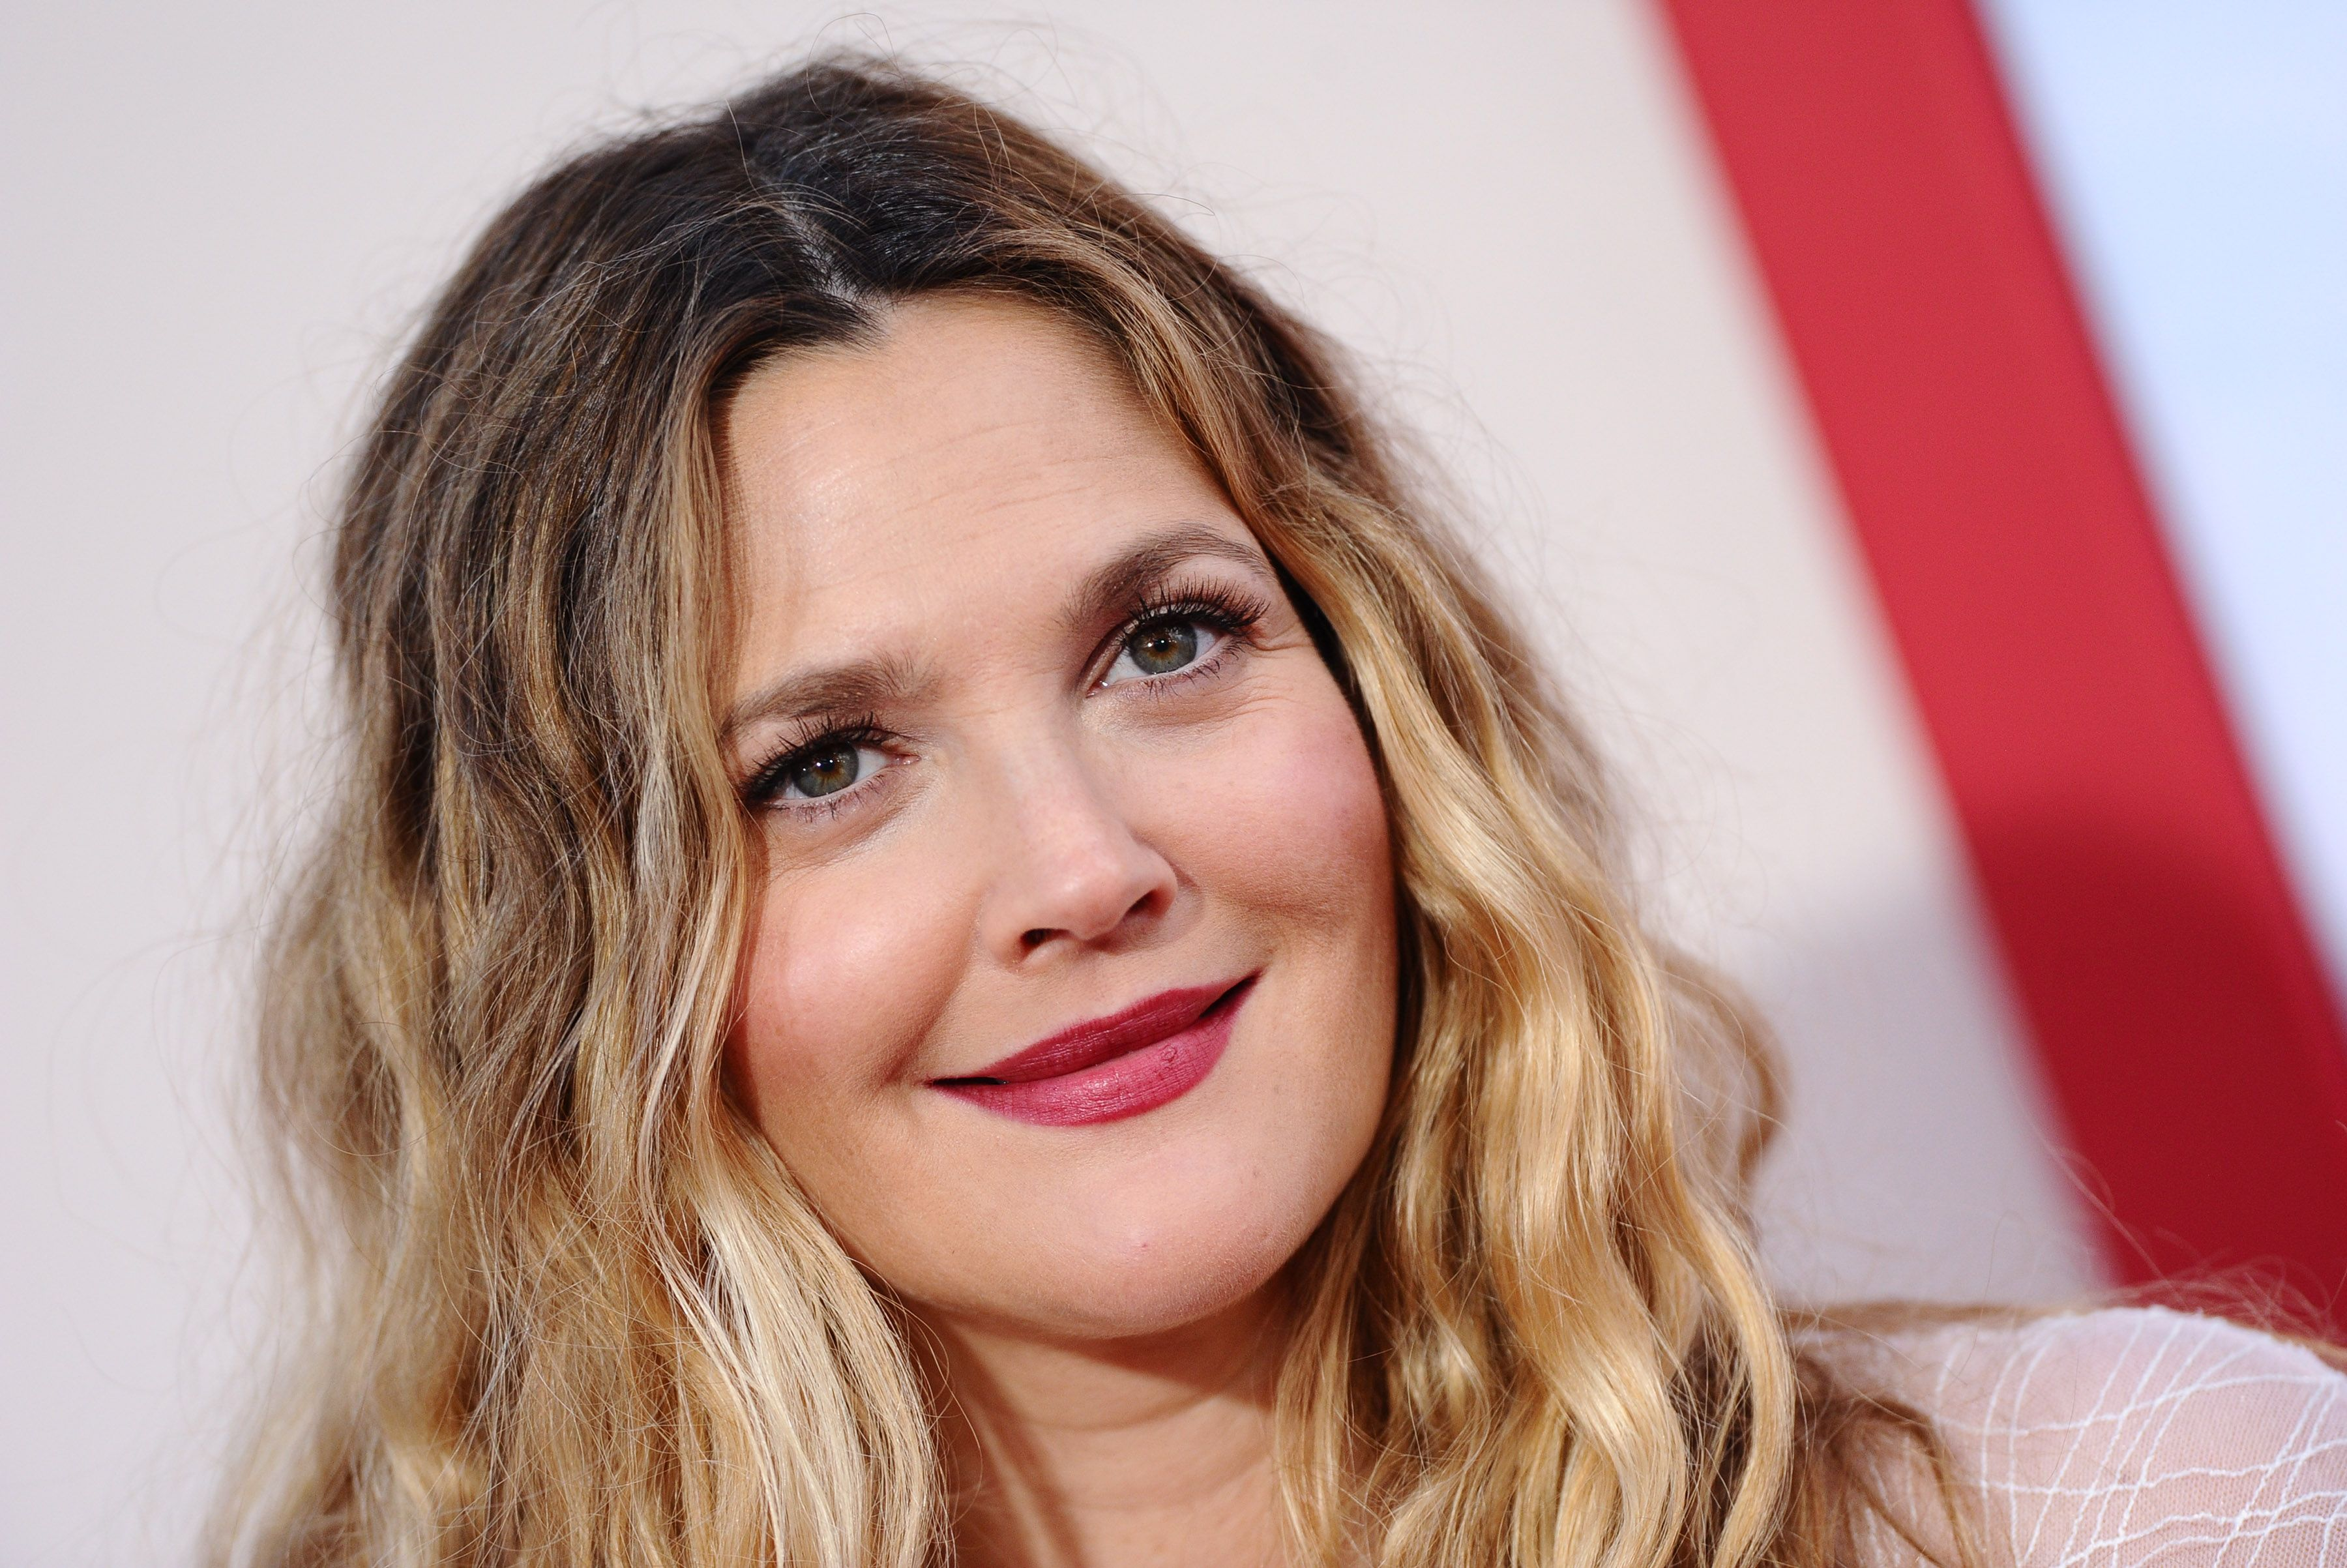 Drew Barrymore Posts New Weight Loss Before-And-After Photo, Opens Up About Body Image